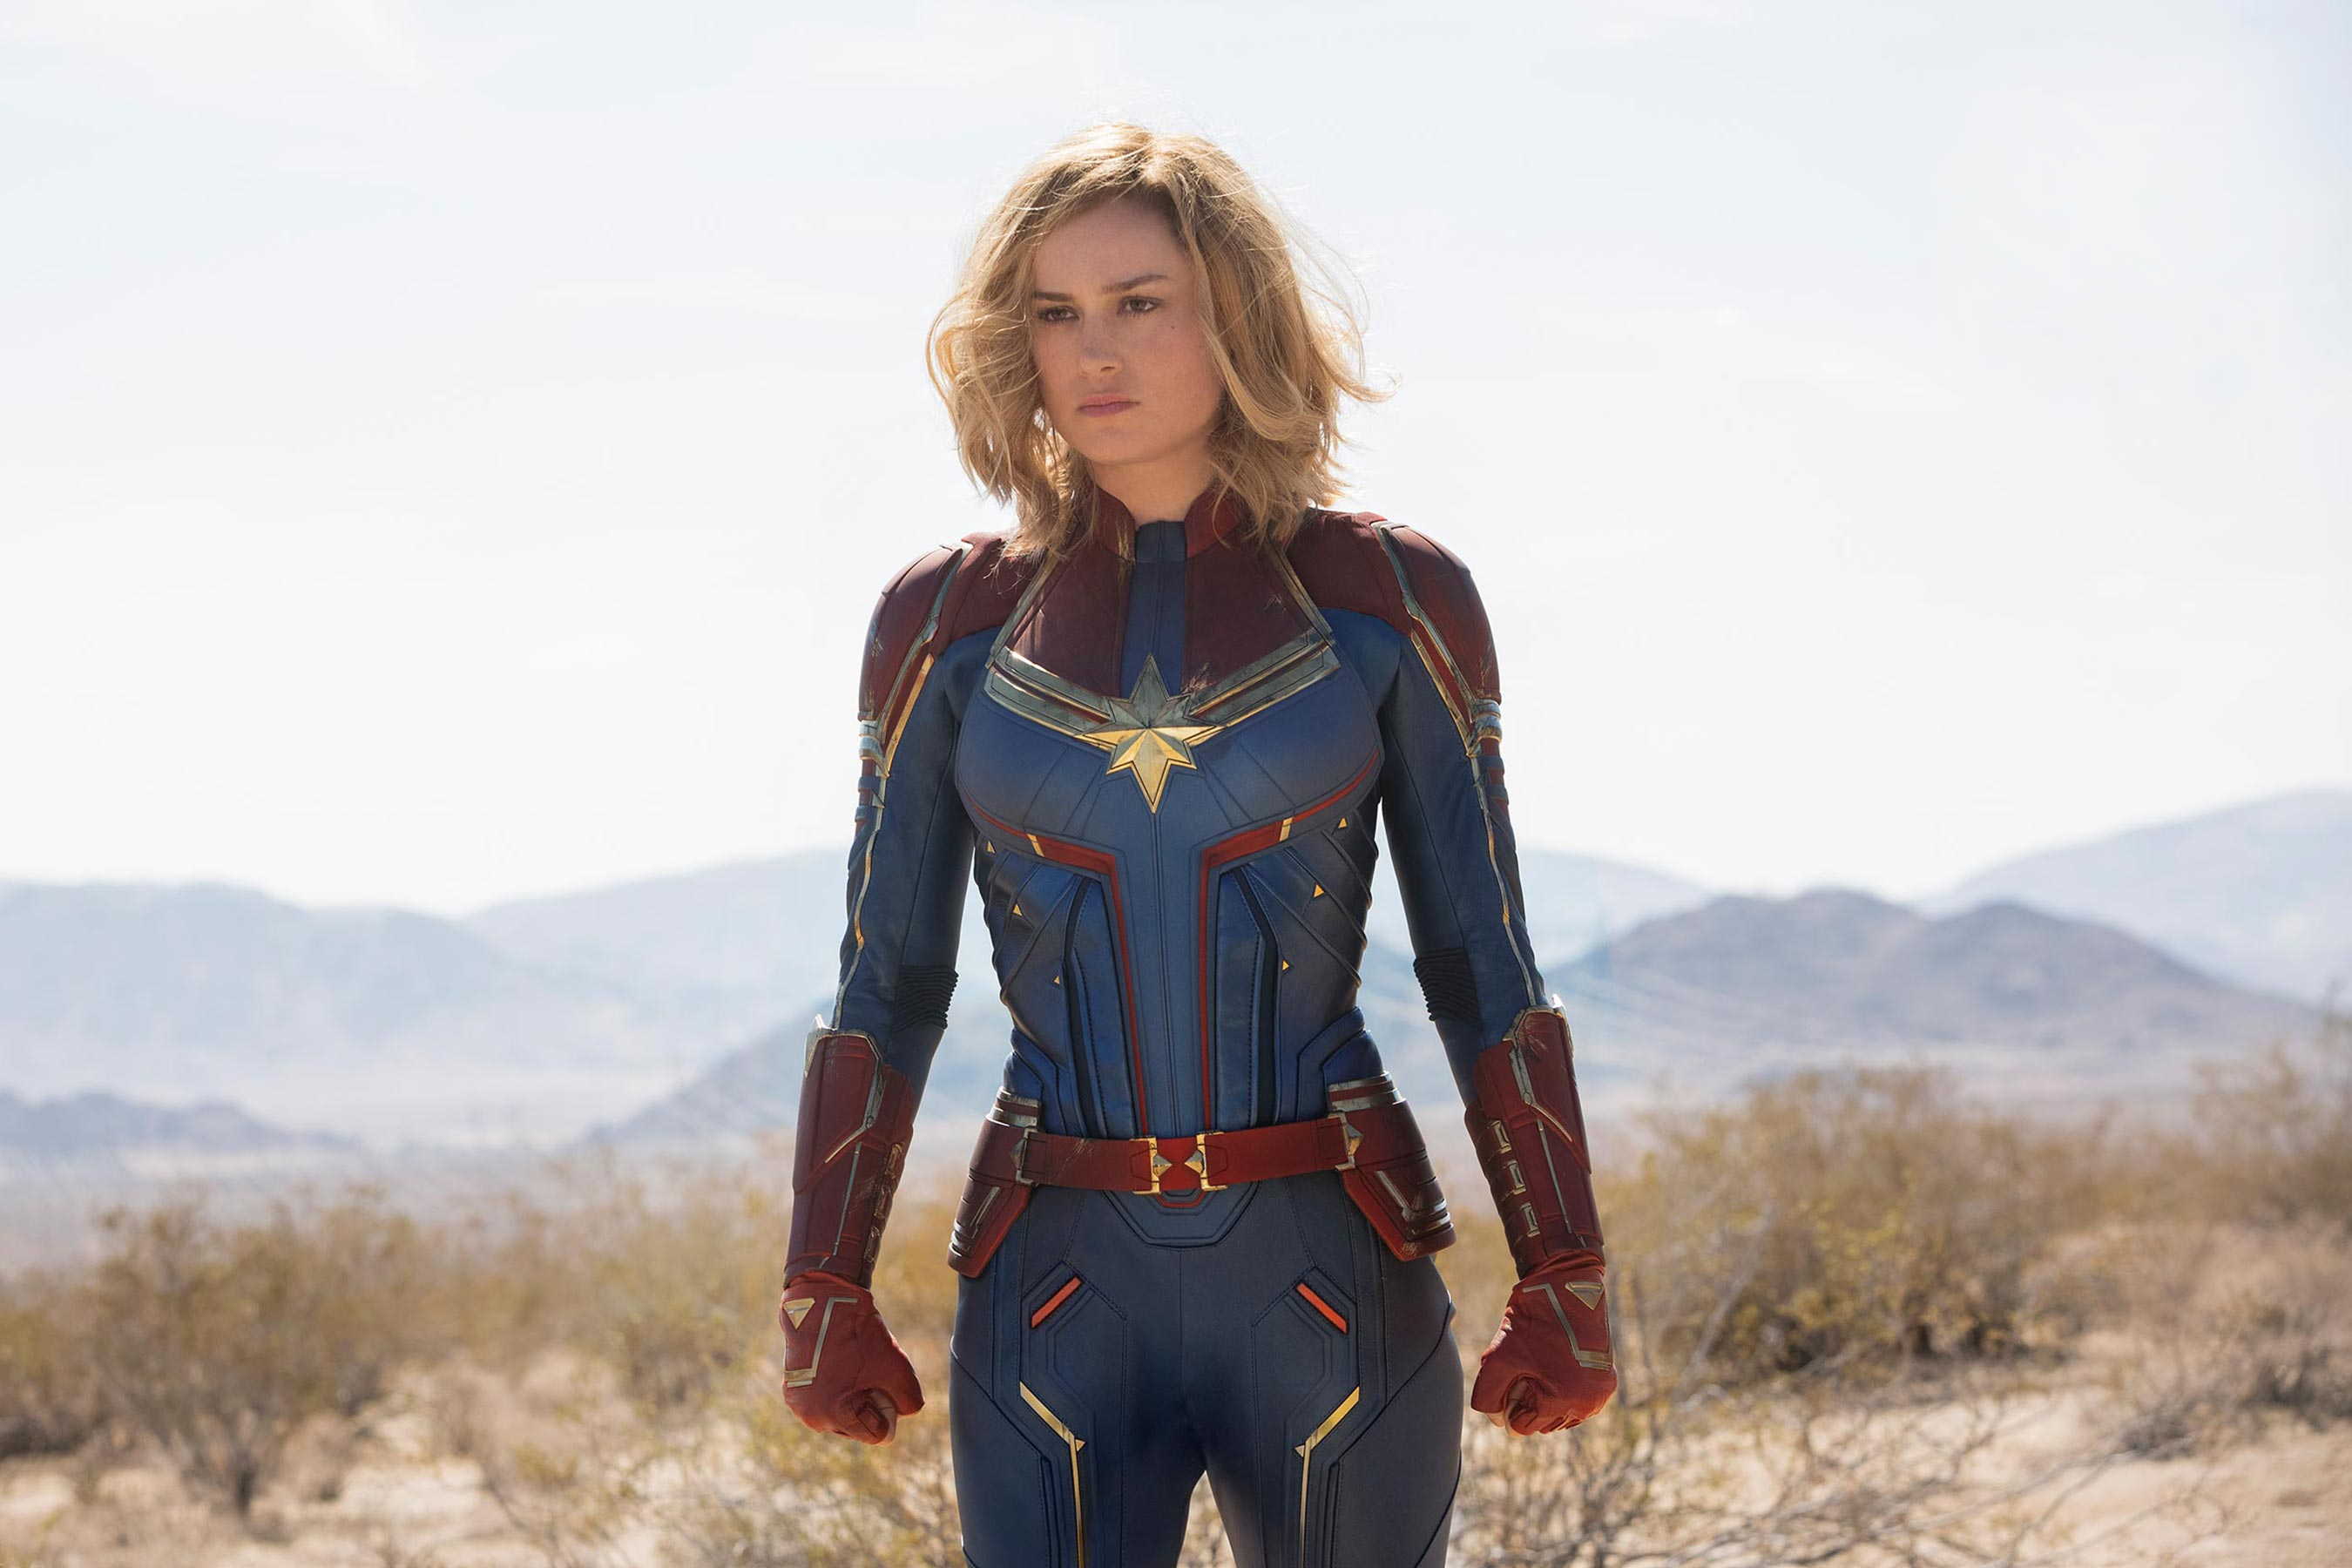 Wallpaper Brie Larson Captain Marvel Movie Marvel Desktop Picture